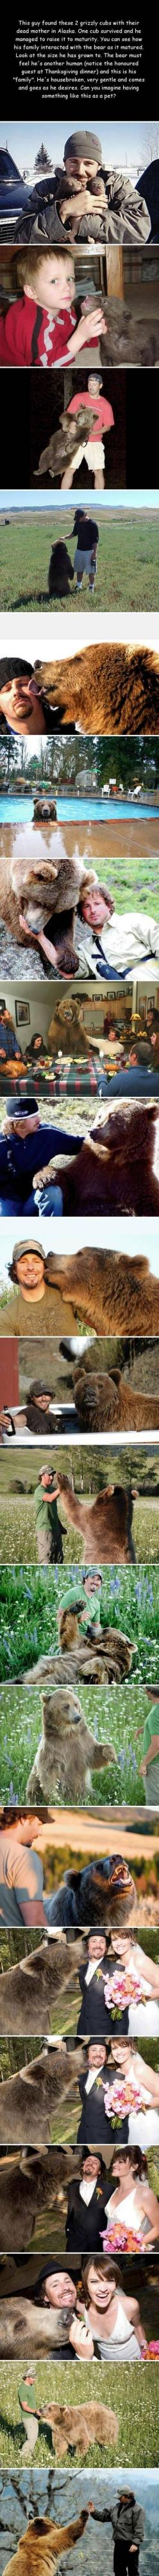 Thanks Pinterest. Now I want a bear. Anybody know if this is a real thing?: Humanity Restored, Adorable Animals, Wild Animals, Pet Bear, Bear Cubs, Grizzly Bears